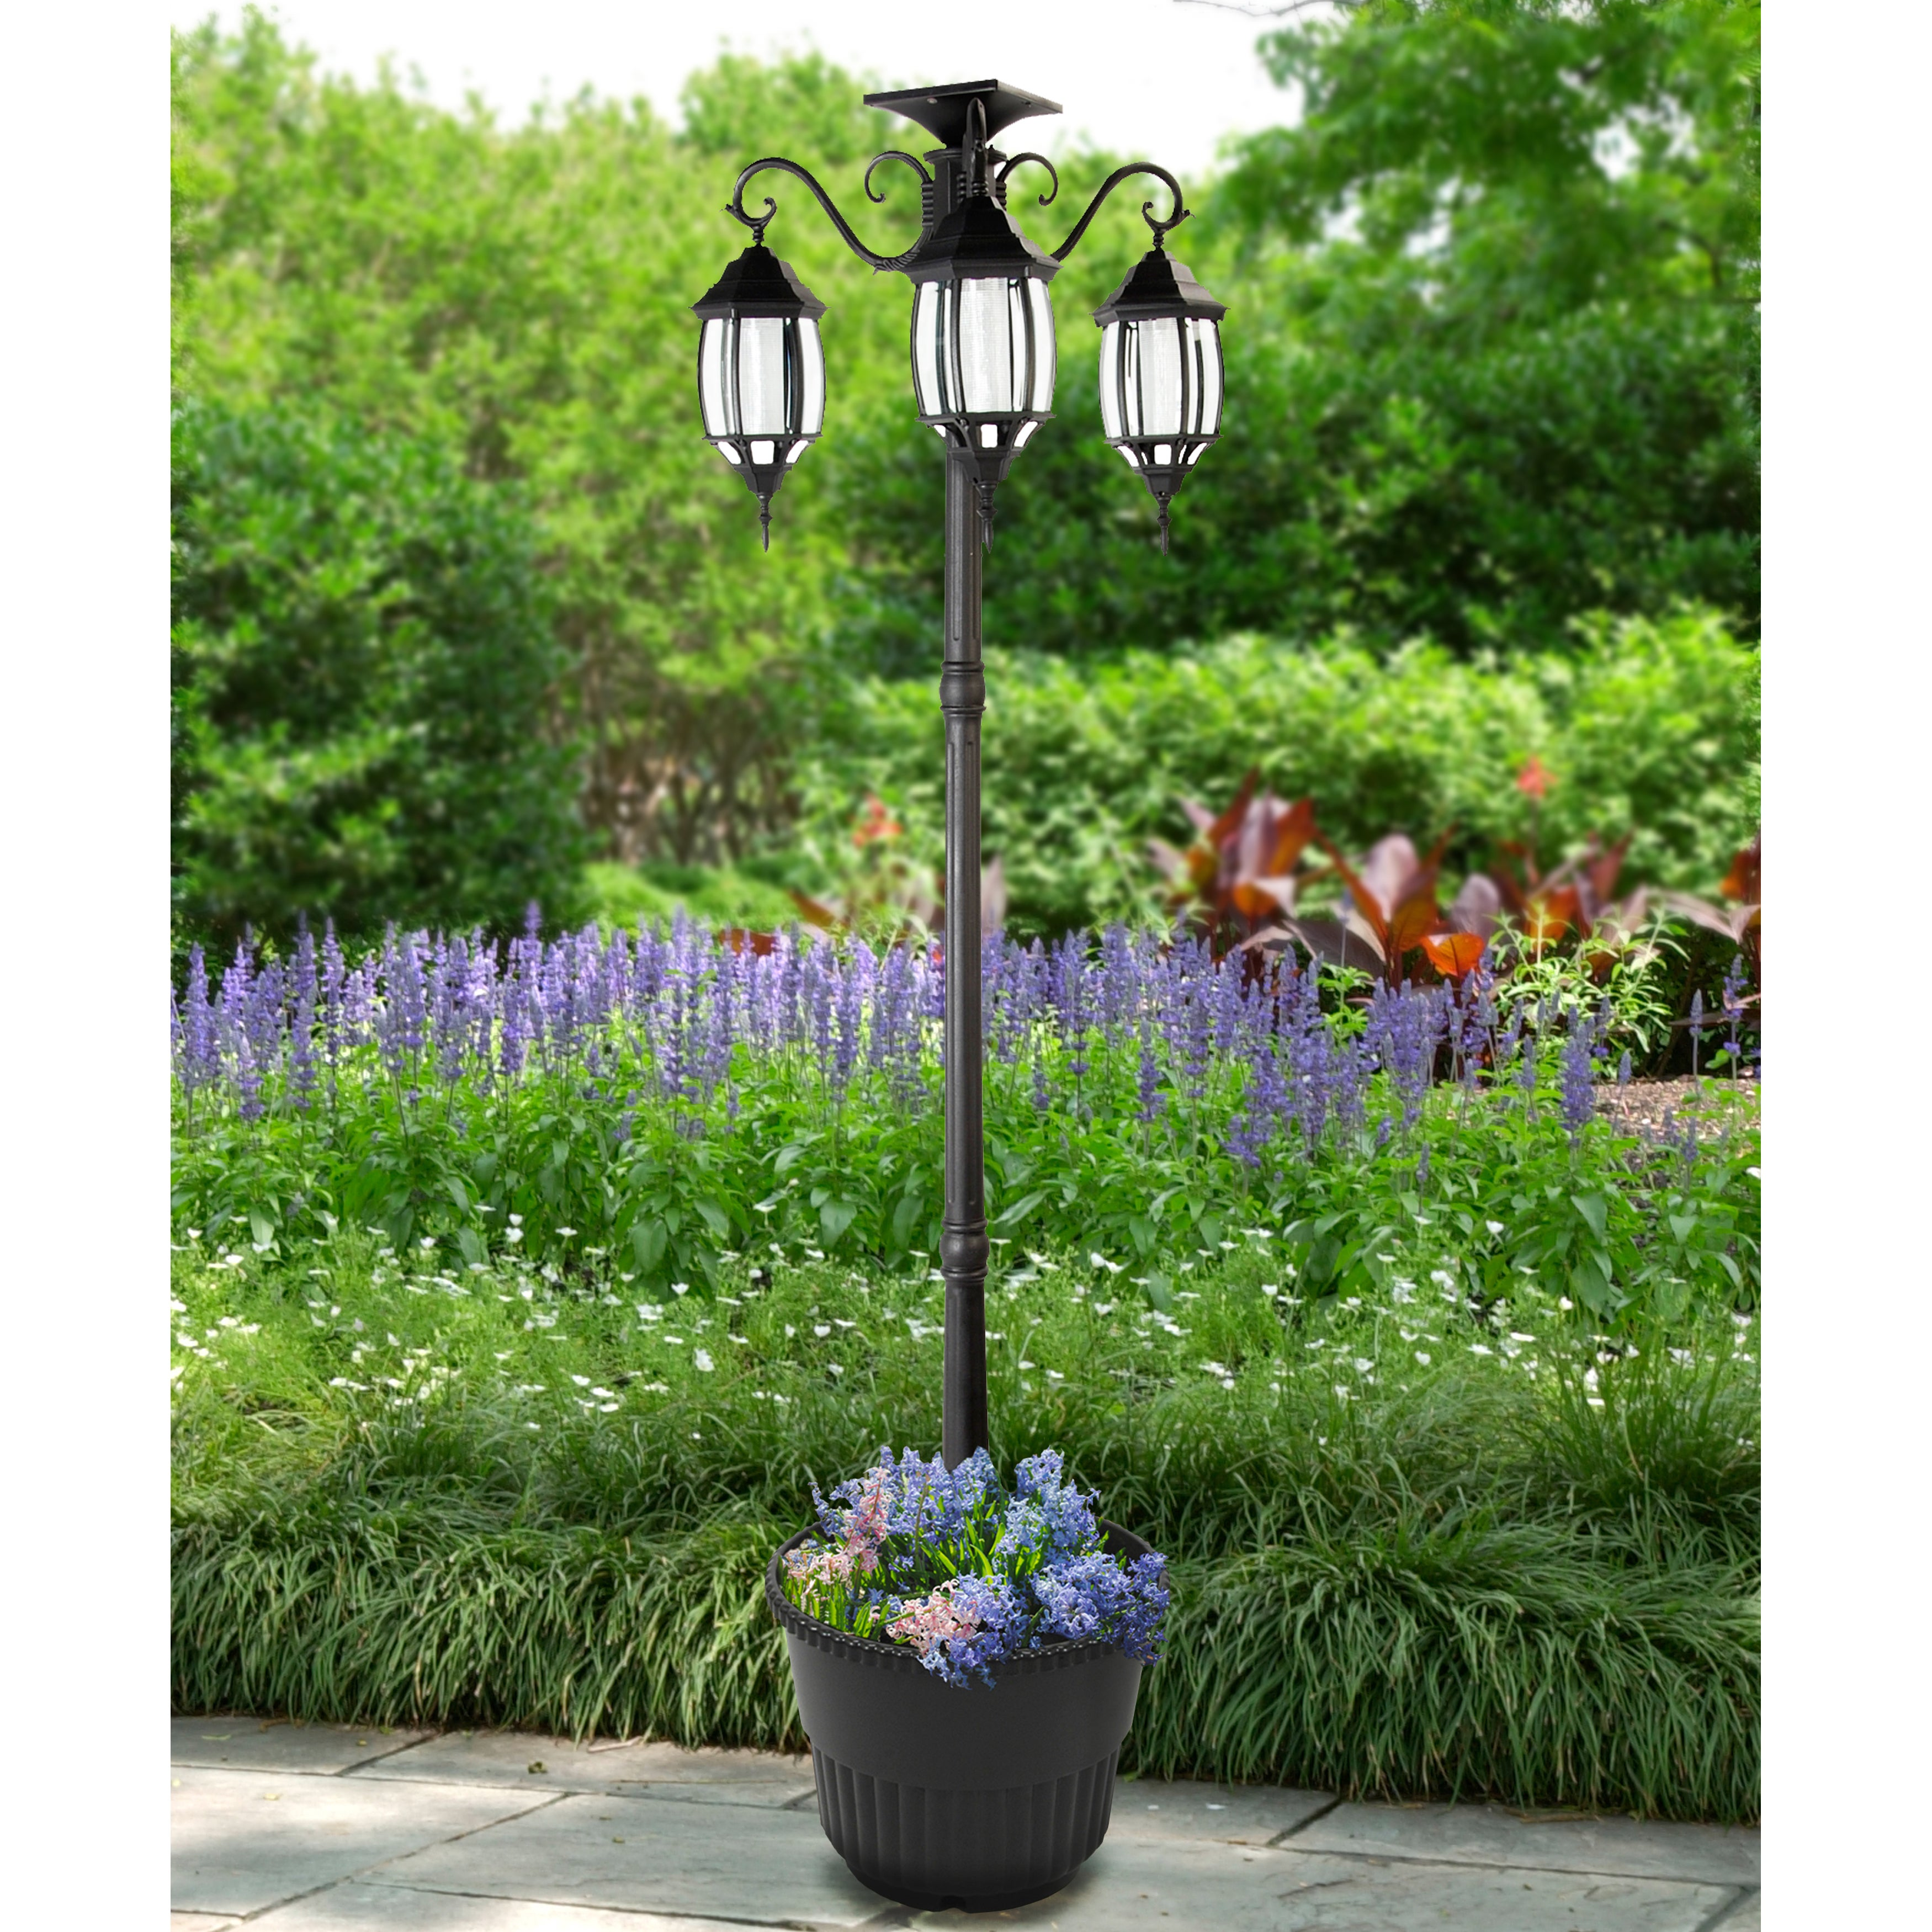 Global Madison Solar Lamp Post and Planter (302013), Blac...